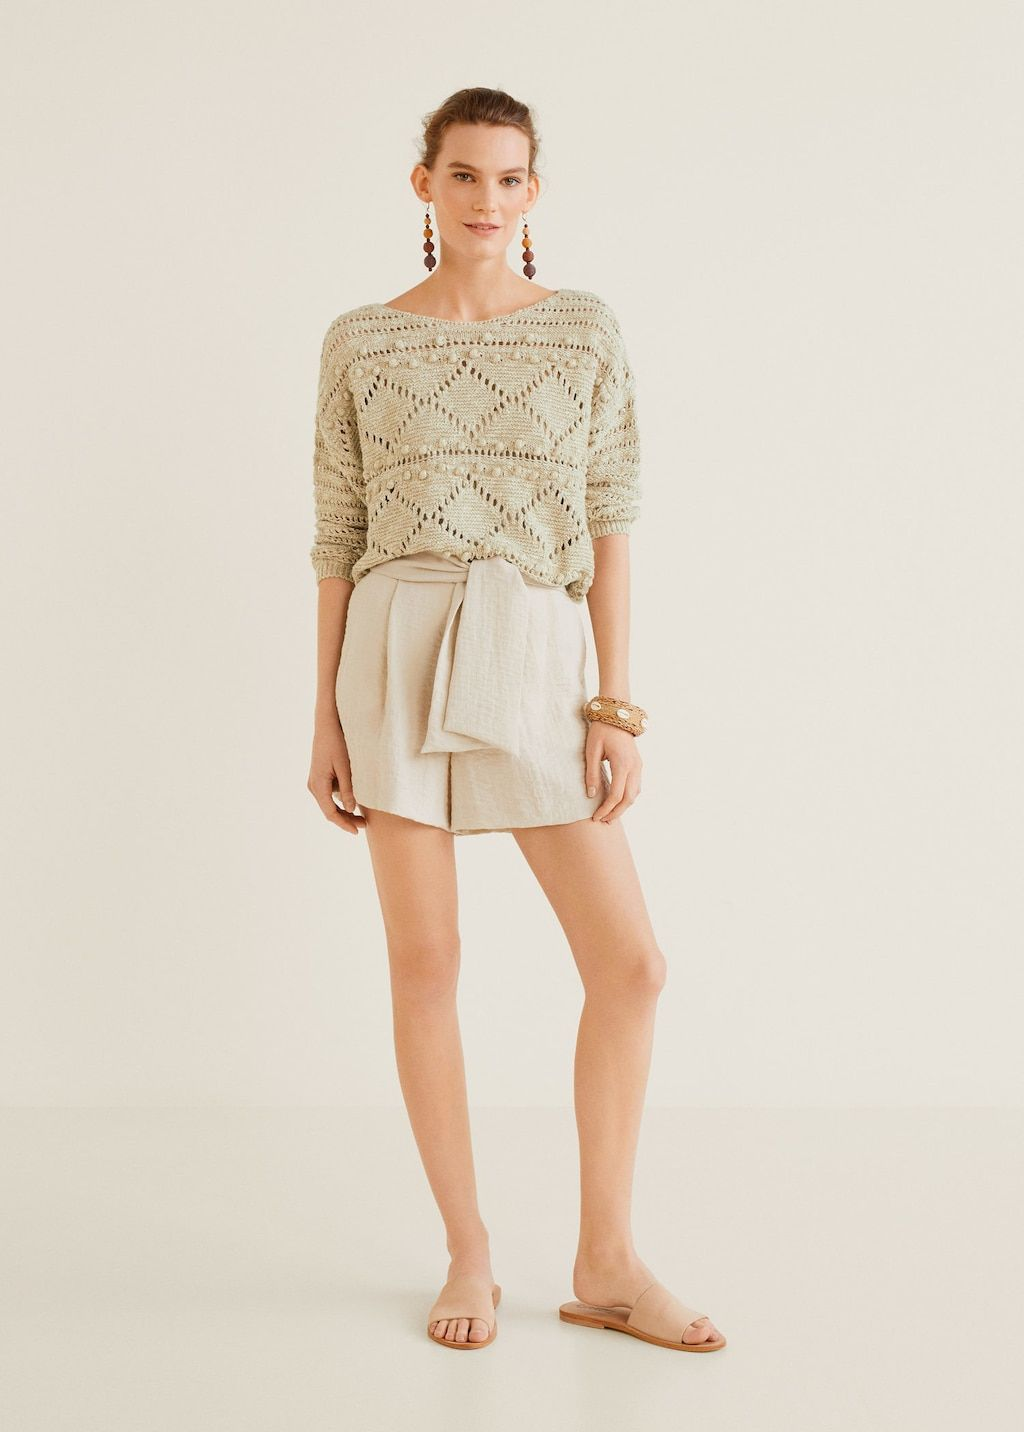 nouveau produit 34113 91c38 Pull-over maille lin - Femme in 2019   I want   Spring ...